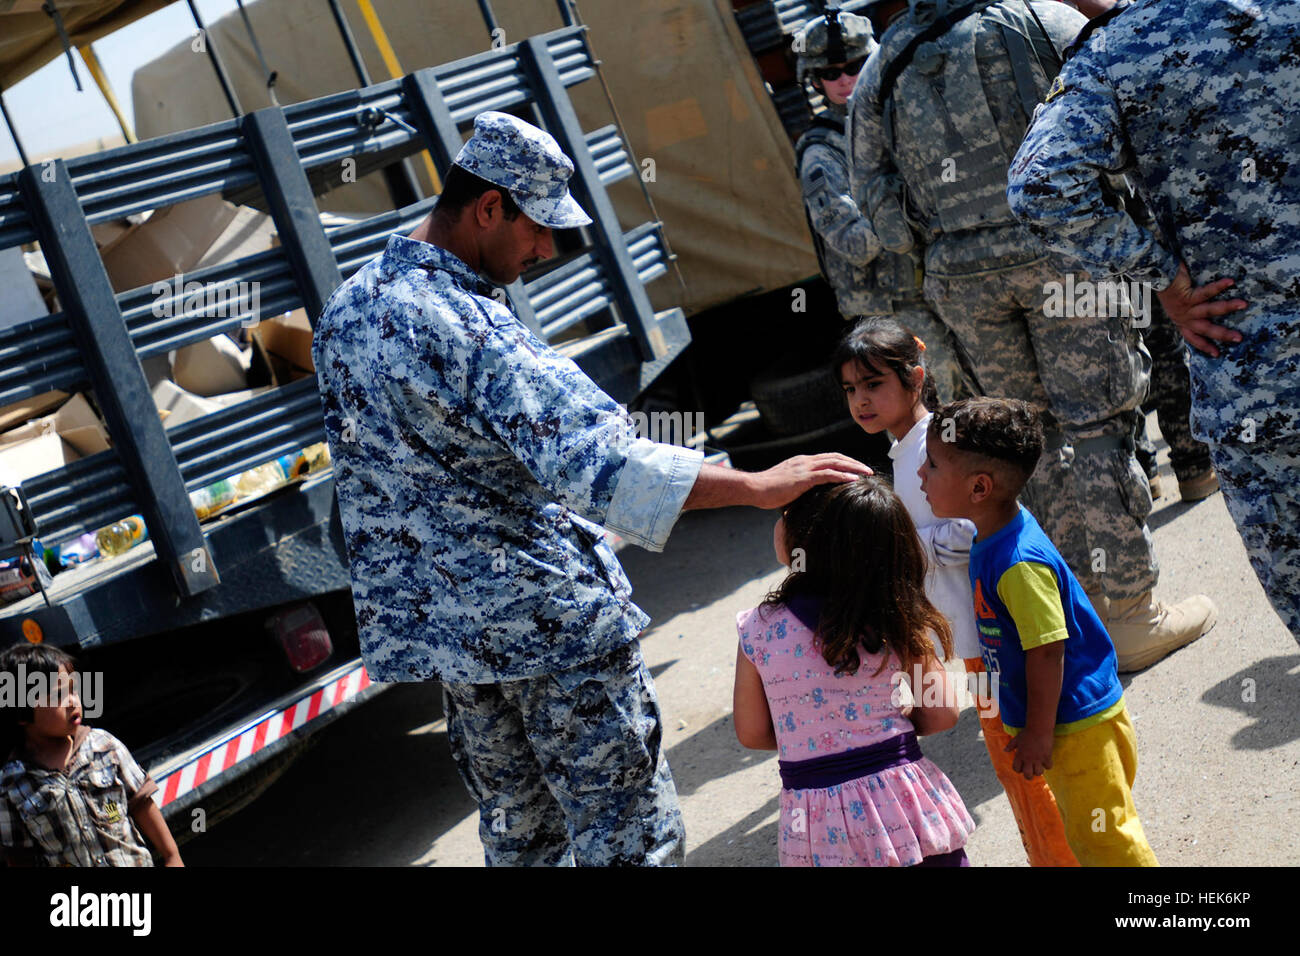 An Iraqi National Police officer speaks with Iraqi children, Oct. 15, during a humanitarian aid mission in eastern - Stock Image